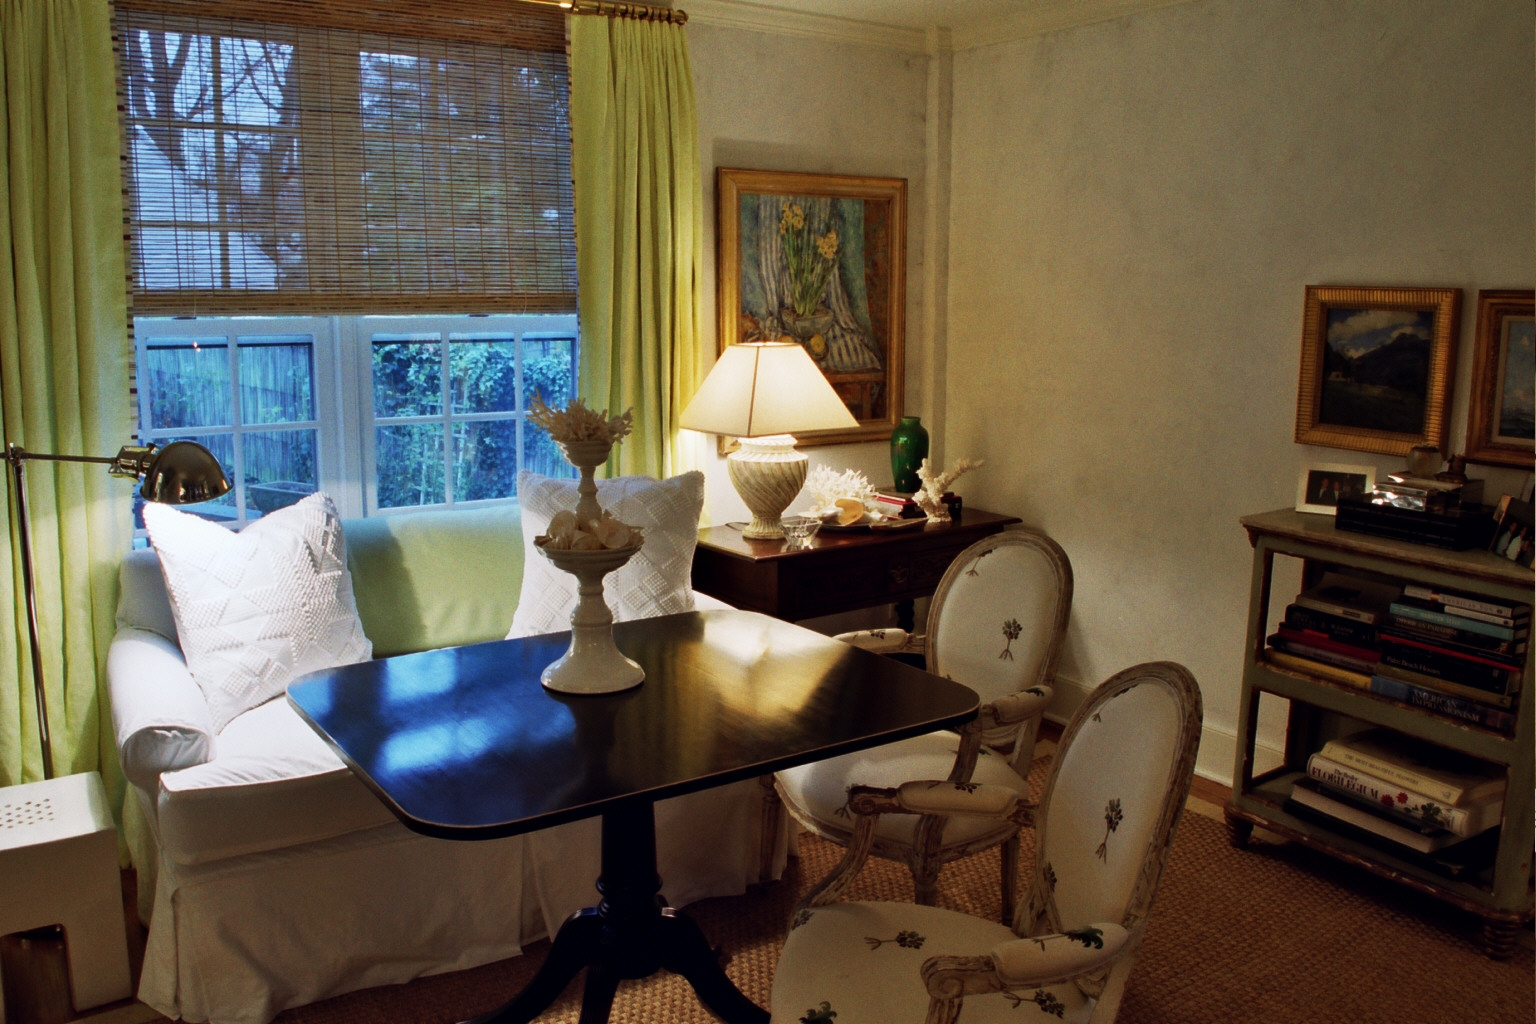 holiday house tour 2003 � westport historical society